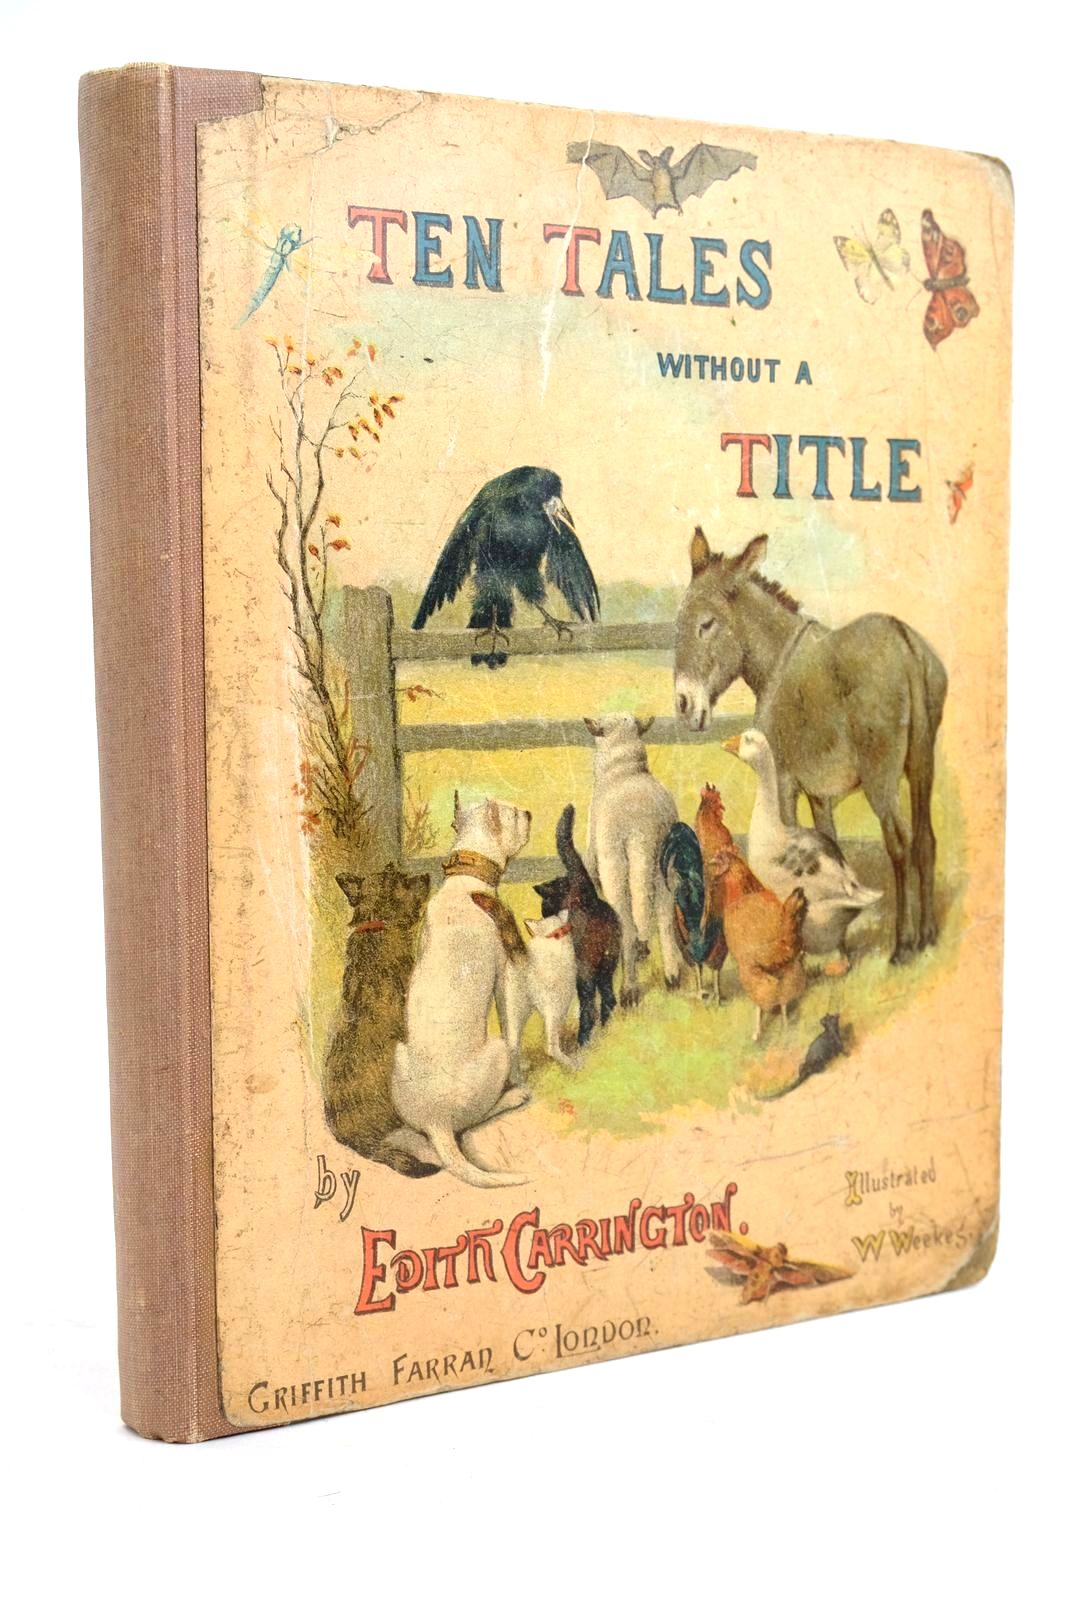 Photo of TEN TALES WITHOUT A TITLE written by Carrington, Edith illustrated by Weekes, W. published by Griffith Farran & Co. (STOCK CODE: 1320425)  for sale by Stella & Rose's Books